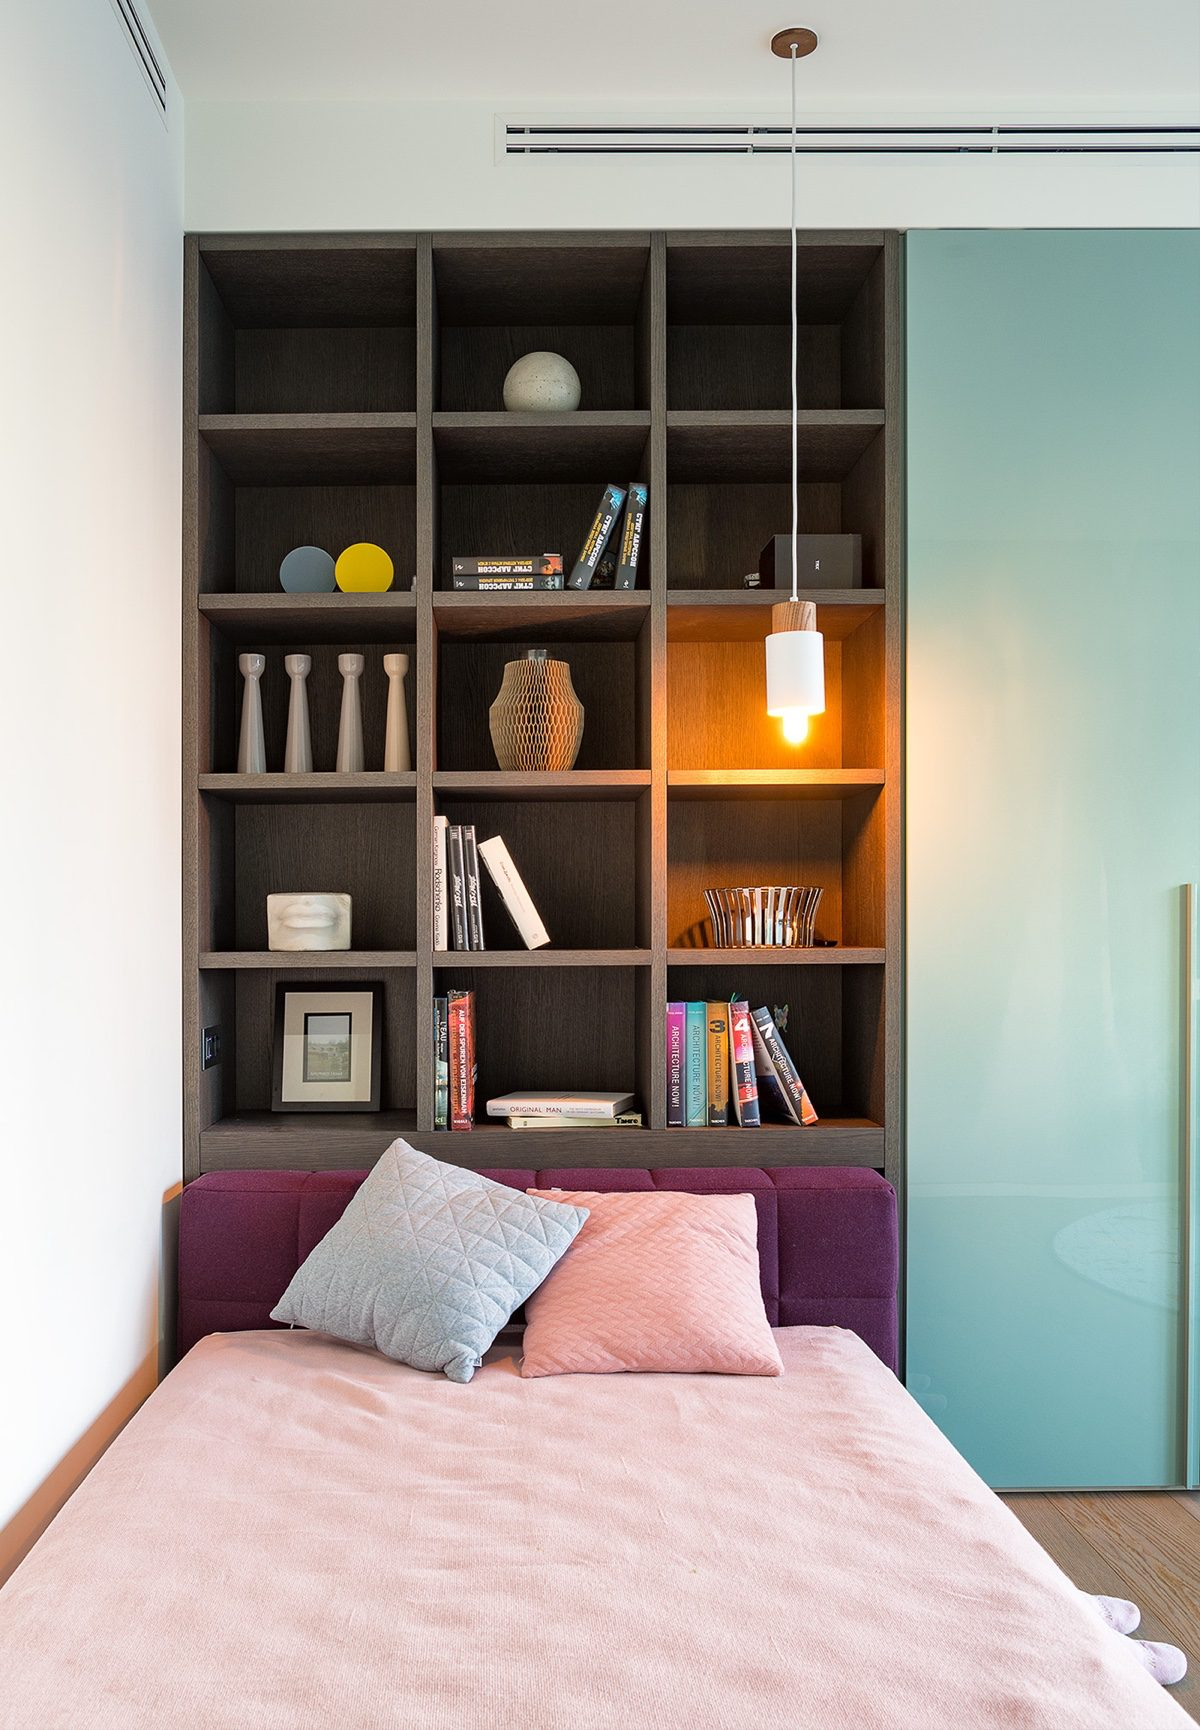 Twin Bed Bookshelves - Modern perfection in kyiv apartment